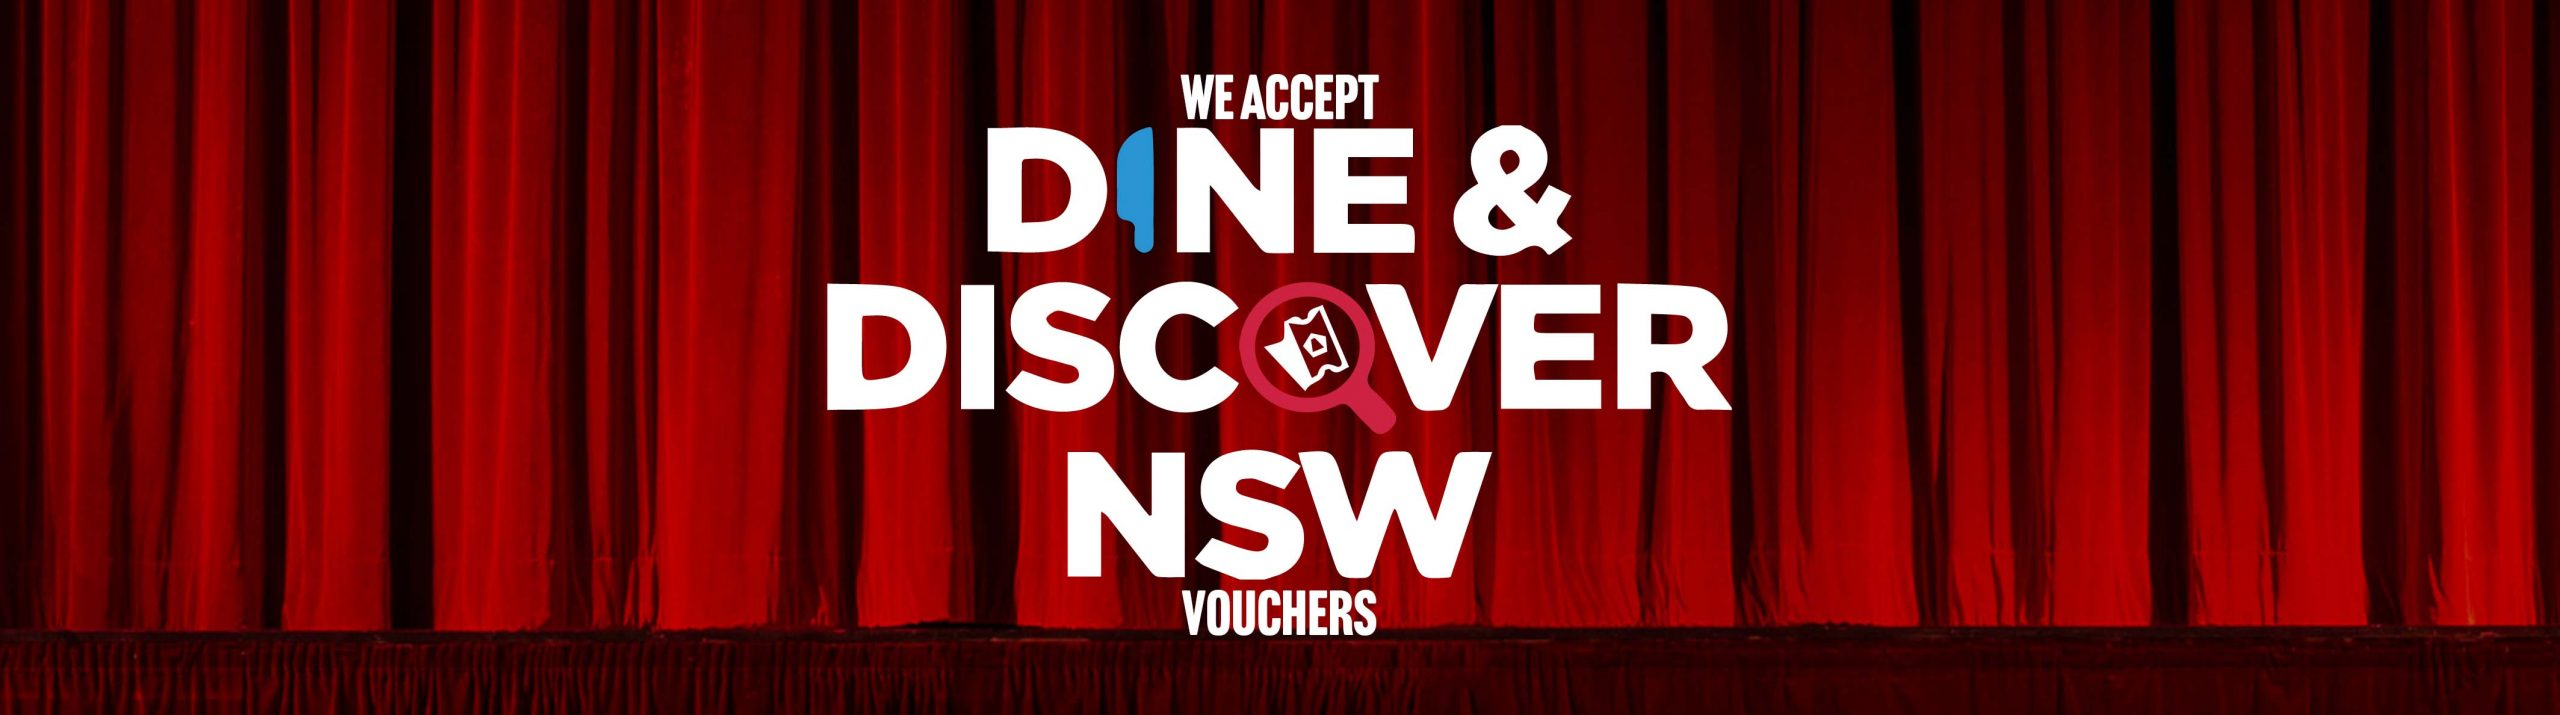 dine and discover nsw central coast